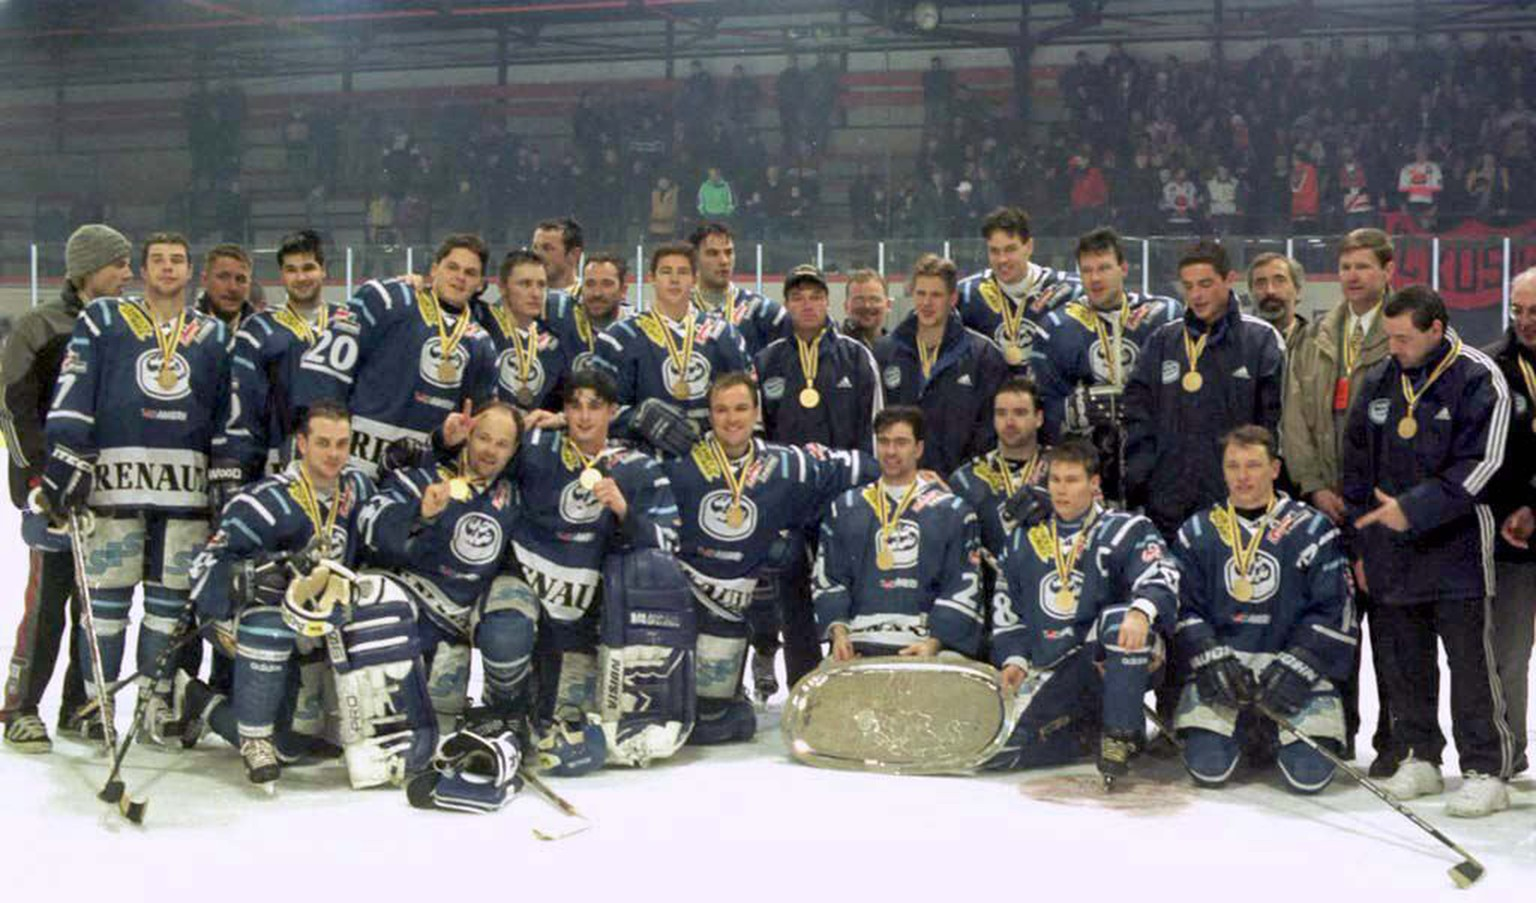 KOS02-19981230-KOSICE; SLOVAKIA: Swiss team HC Ambri Piotta pose with the trophy after winning the Continental Cup '98 in Kosice, 29 December.     EPA PHOTO/TASR/Robert Berenhaut EPA PHOTO TASR/ROBERT BERENHAUT/gh